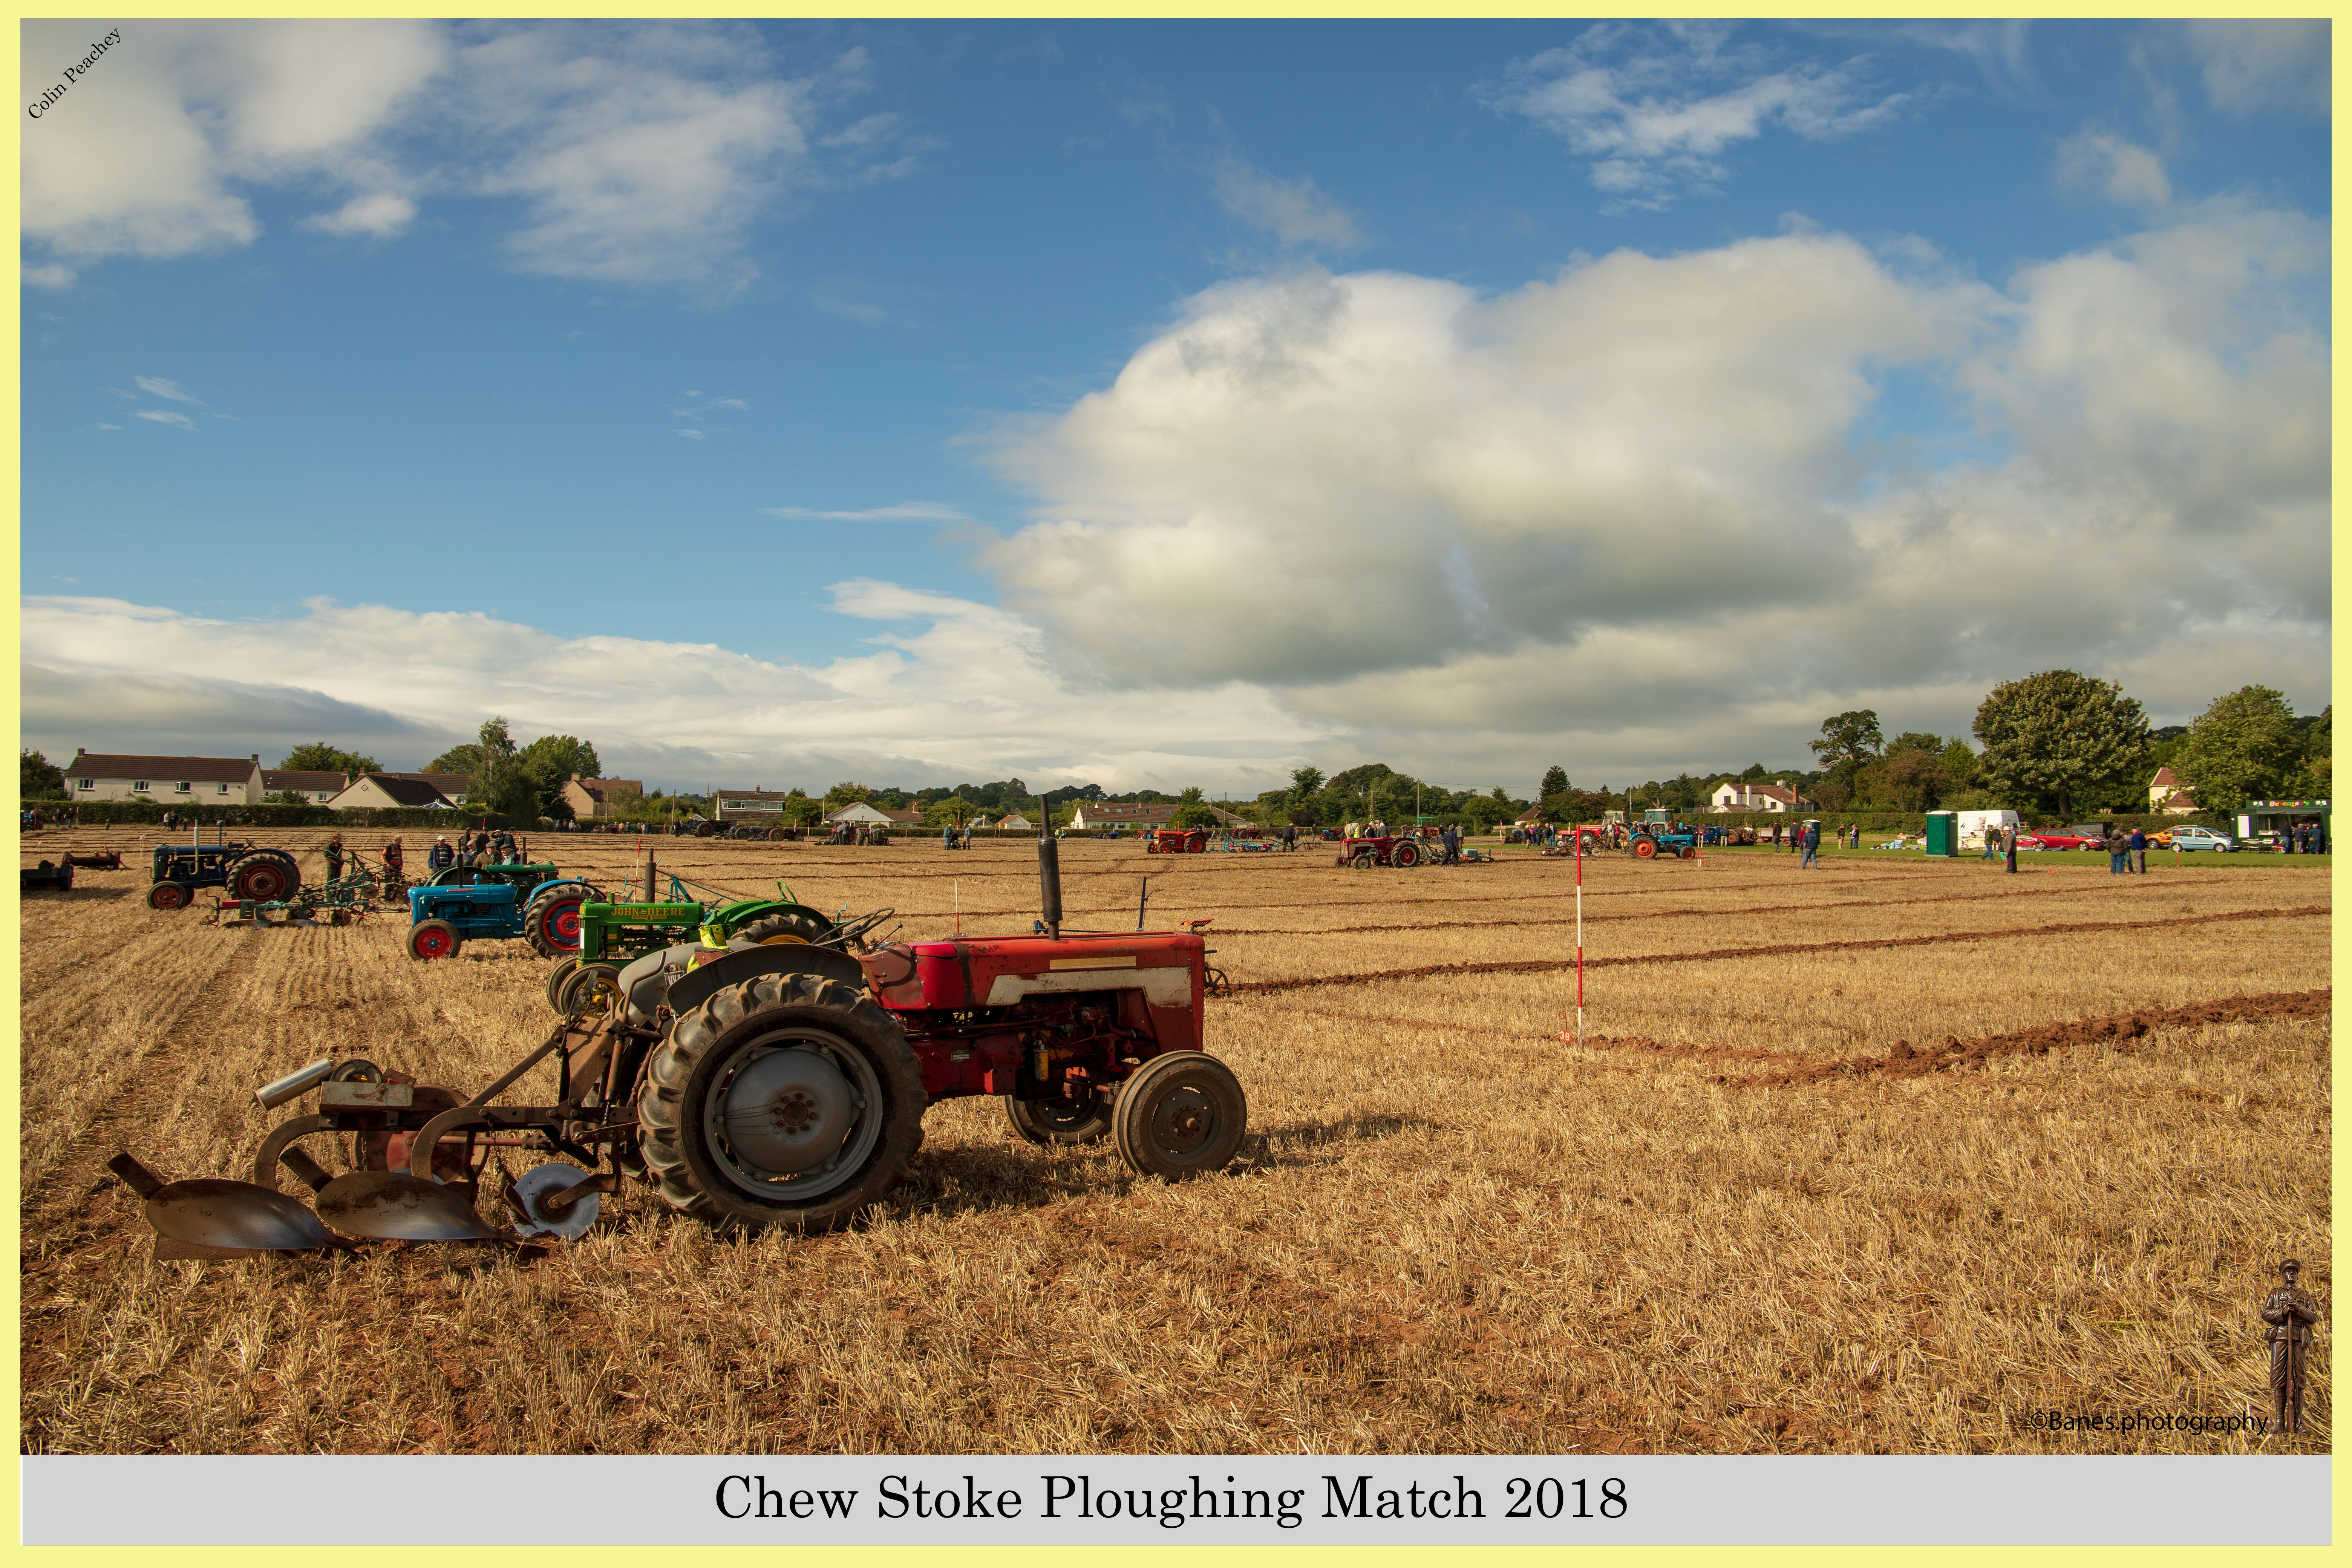 Vintage Tractor at Chew Stoke Ploughing Match 2018